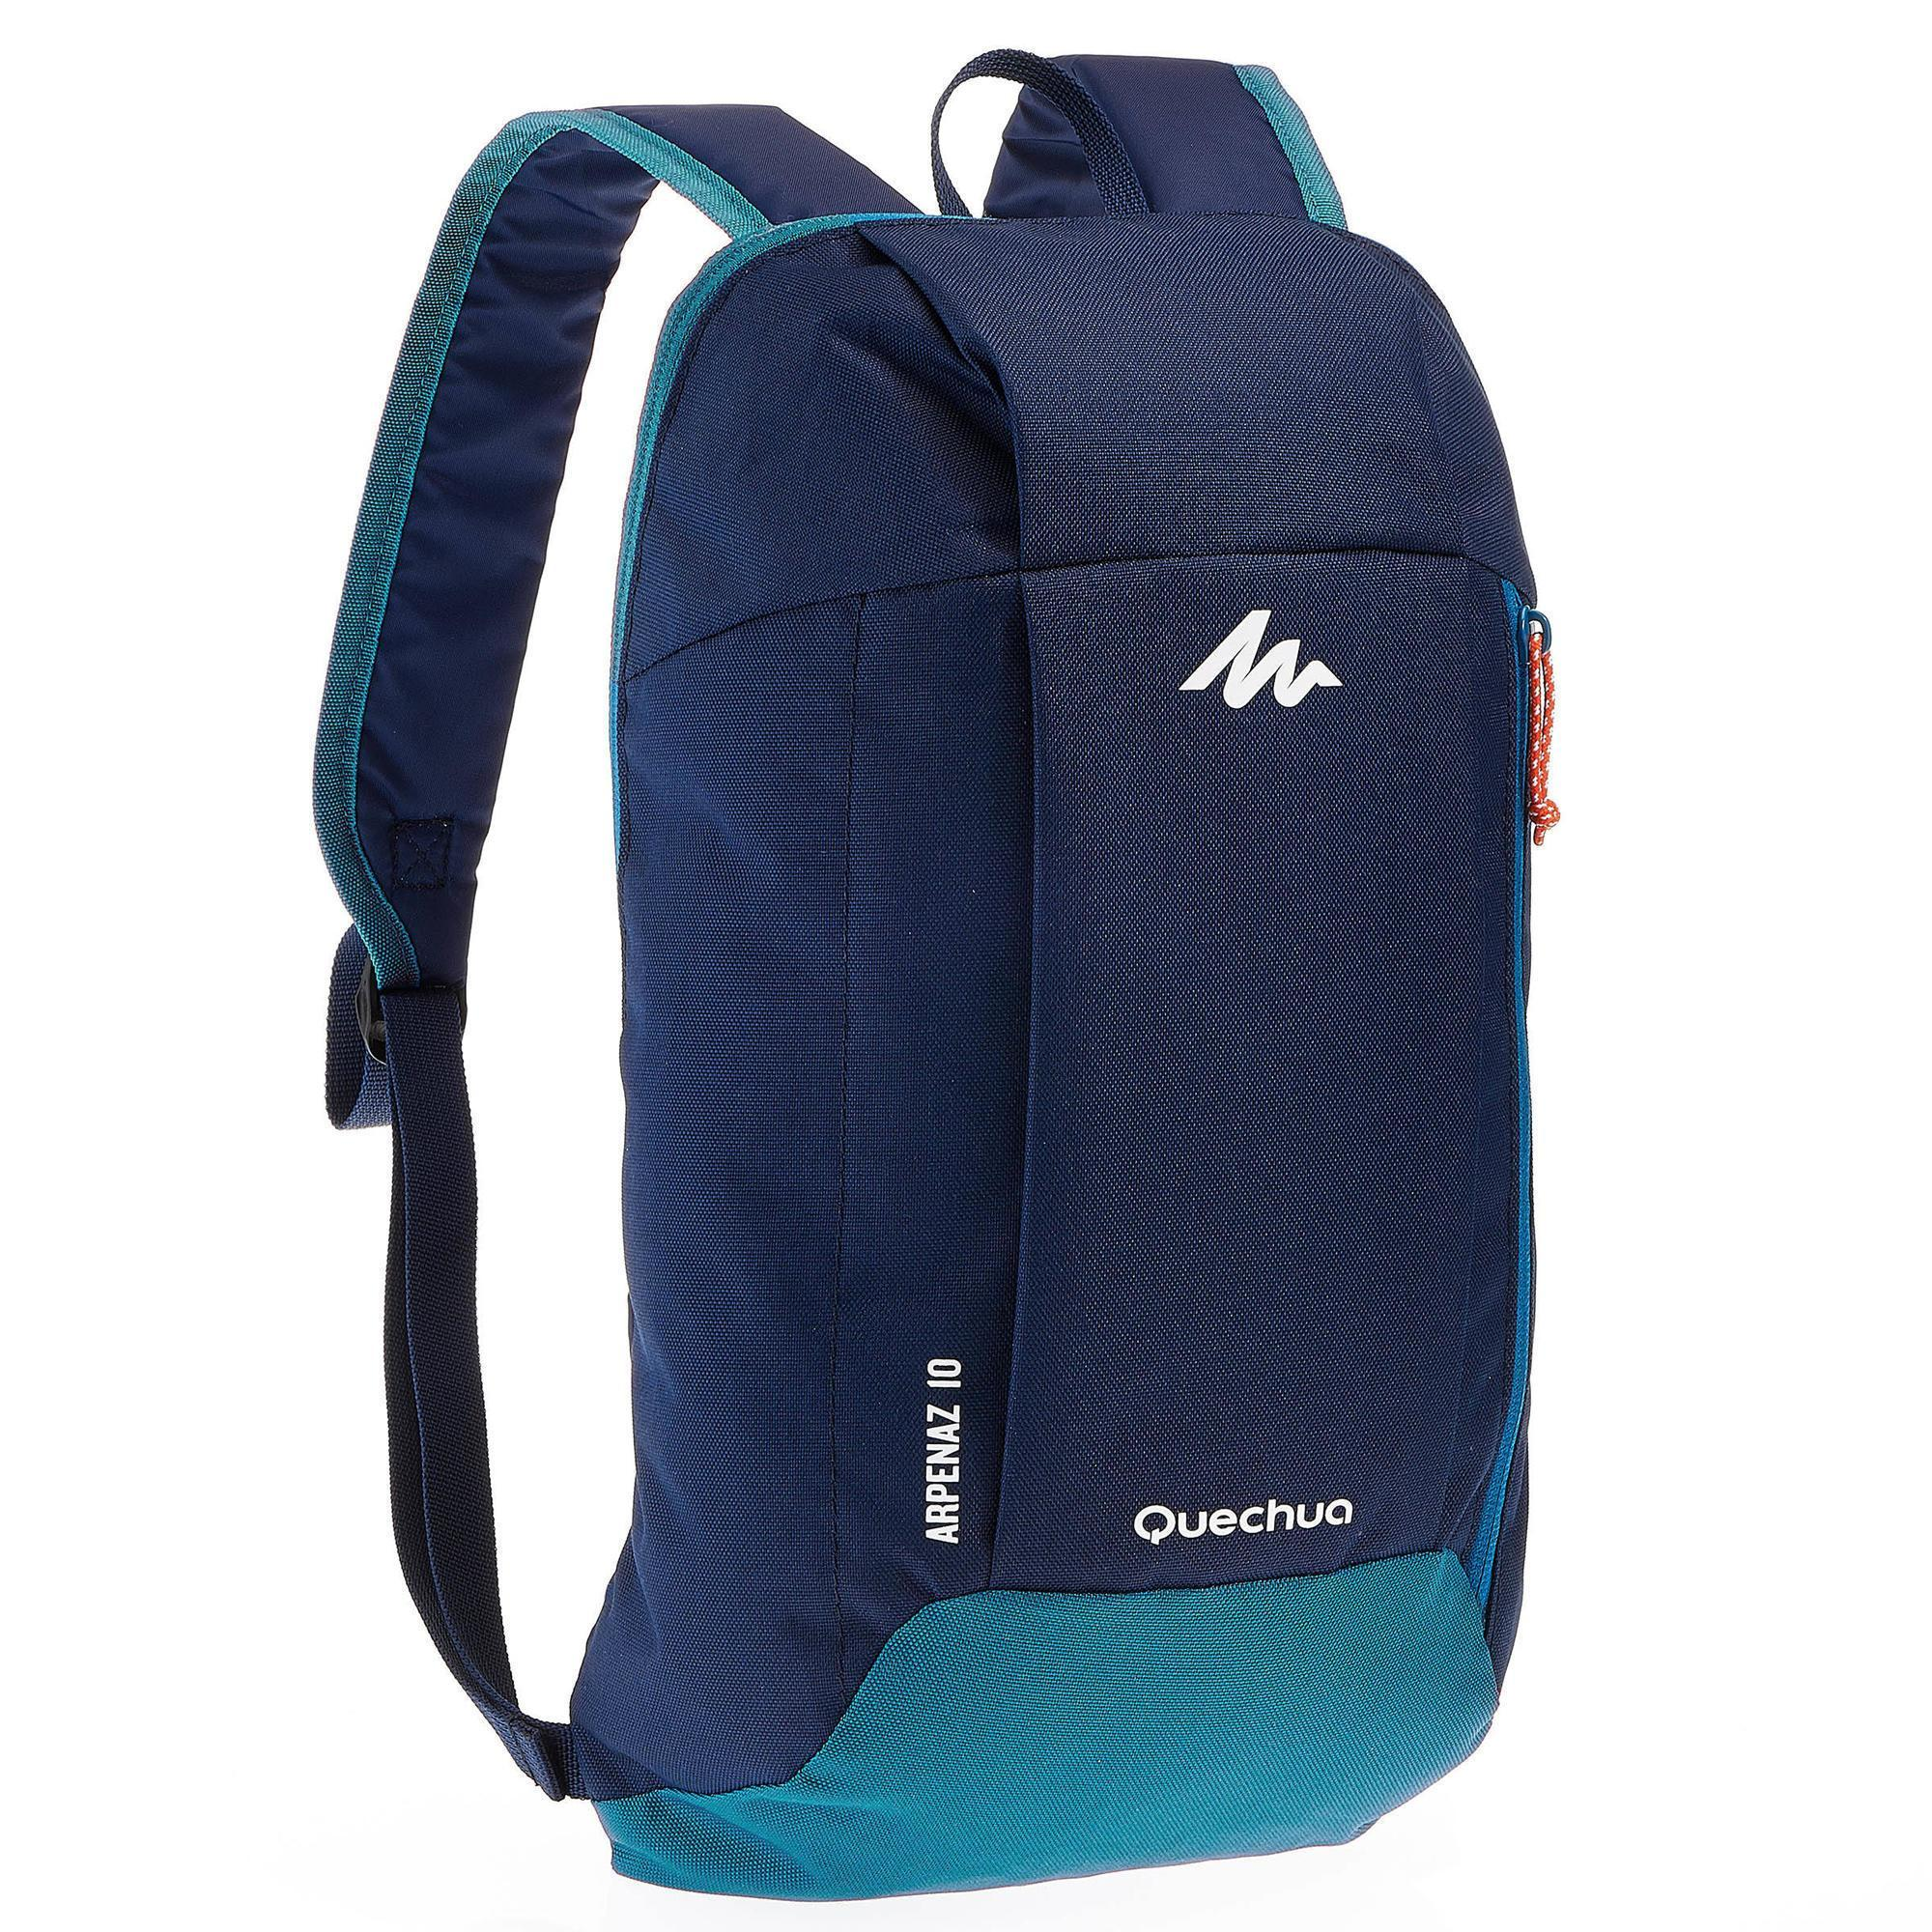 Arpenaz 10 L Day Hiking Backpack Blue Quechua